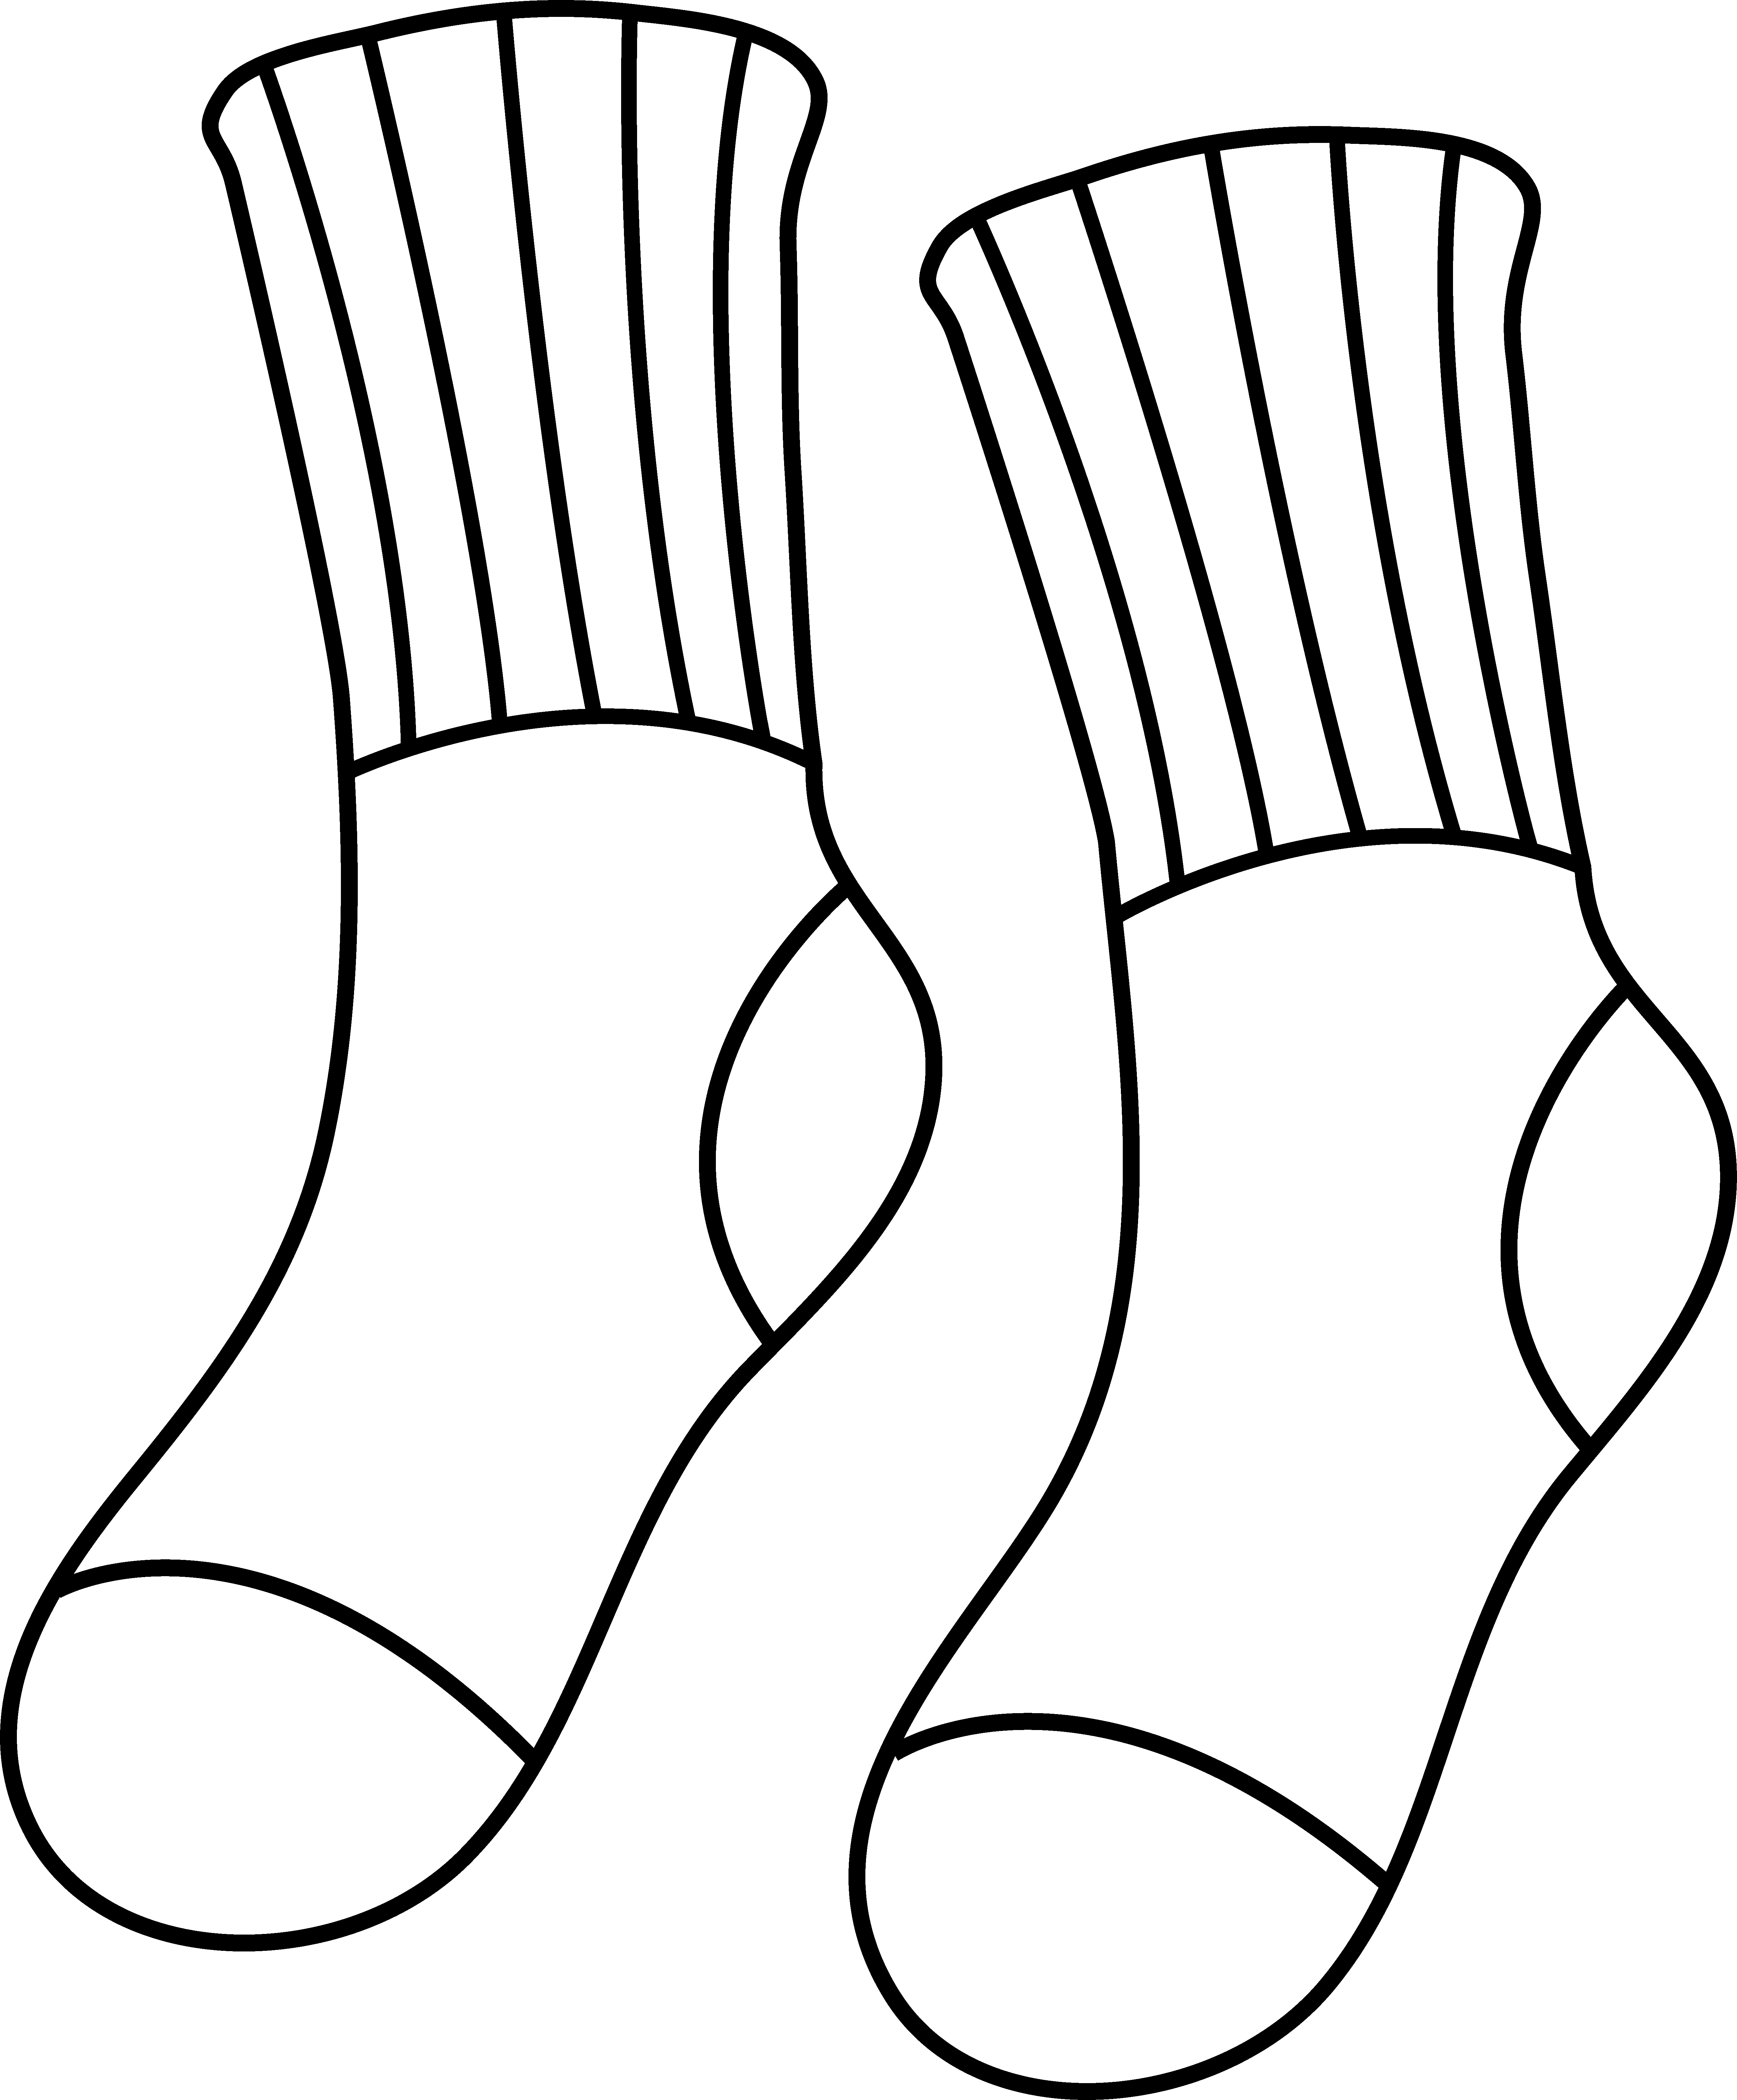 Socks Coloring Page Colorable Socks Outline Coloring Pages Socks Drawing Coloring Pages Inspirational